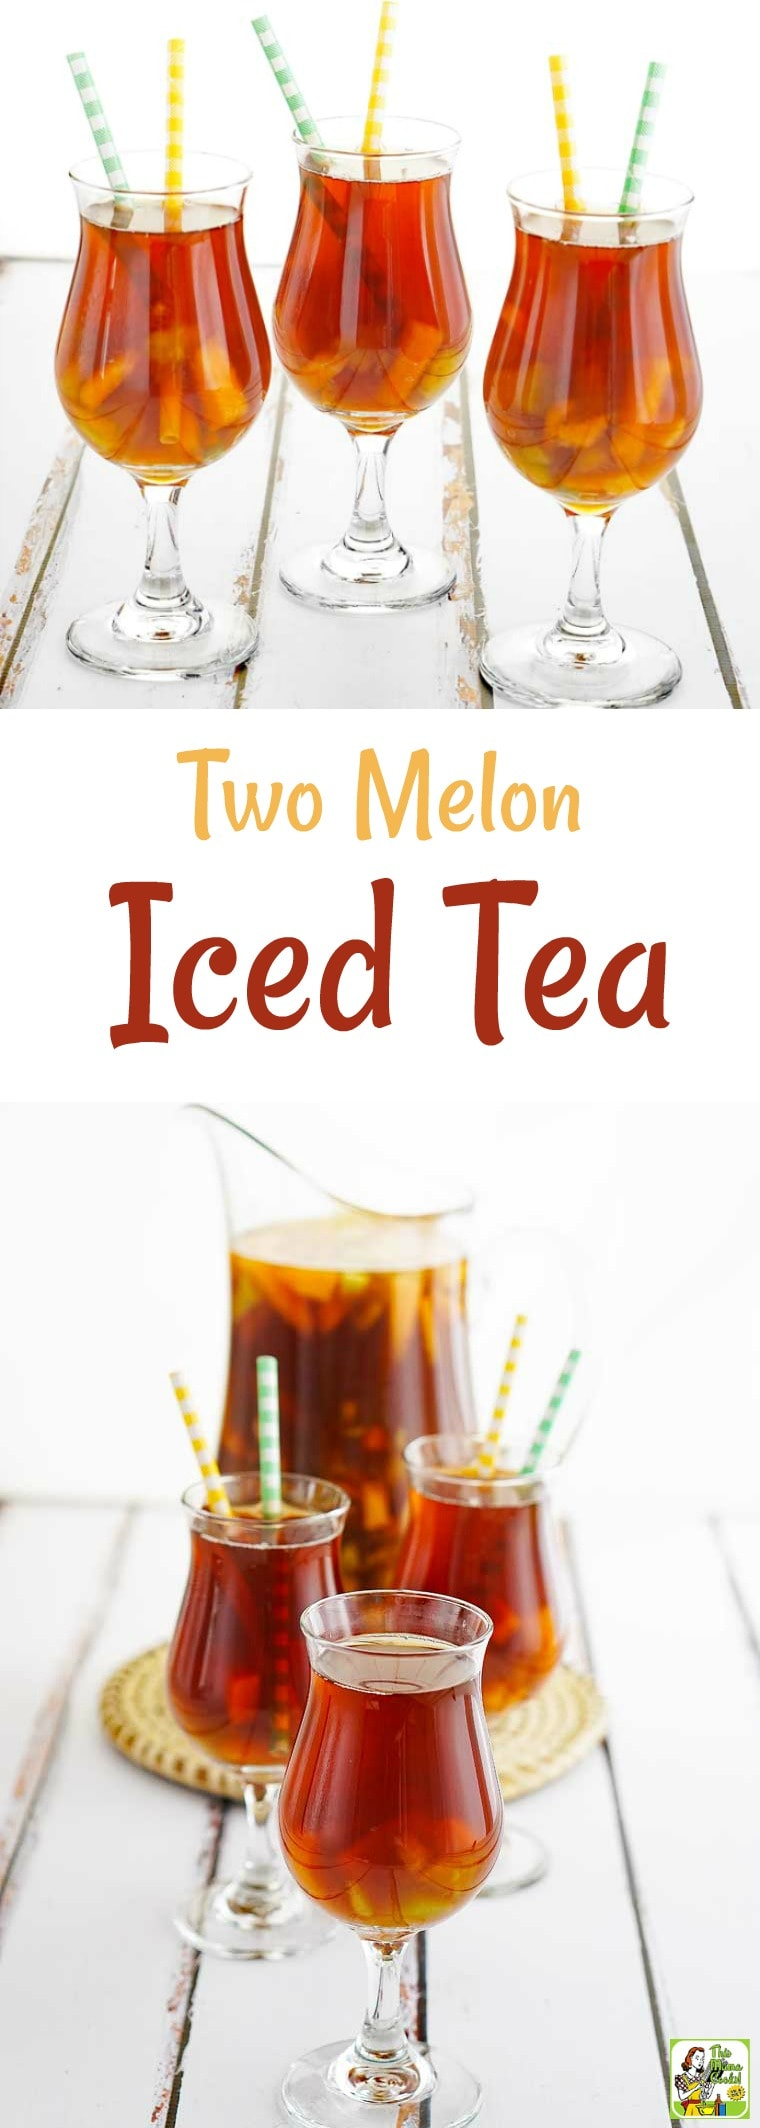 Mix it up with this Two Melon Iced Tea recipe